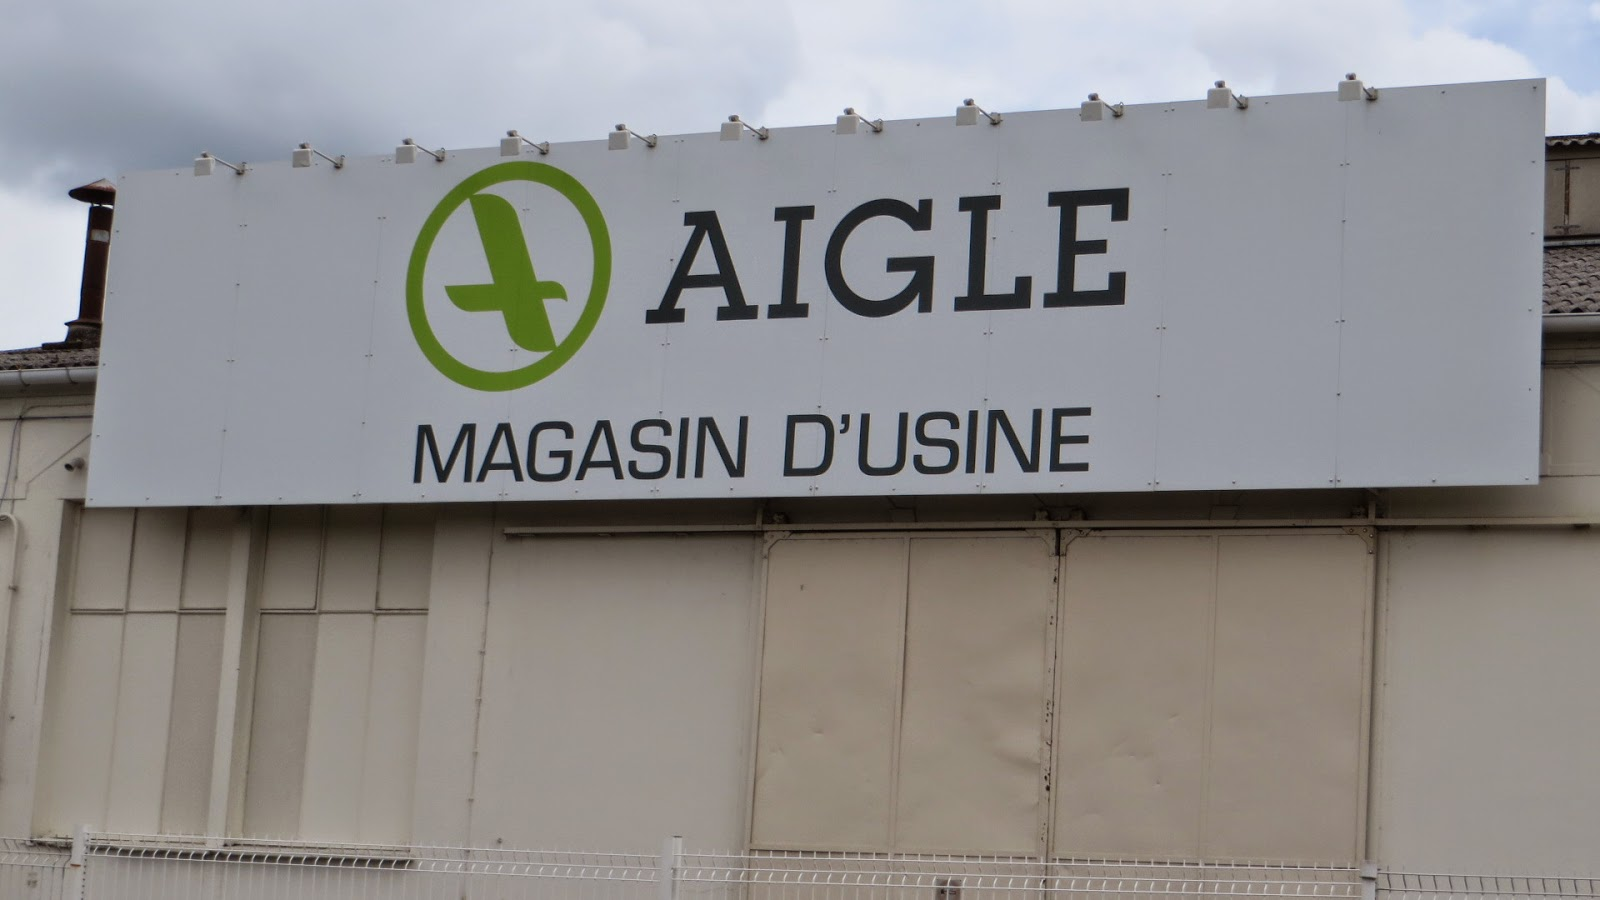 Magasin D Usine Ile De France Magasin D Usine Ile De France Montagut Gilet Cachemire